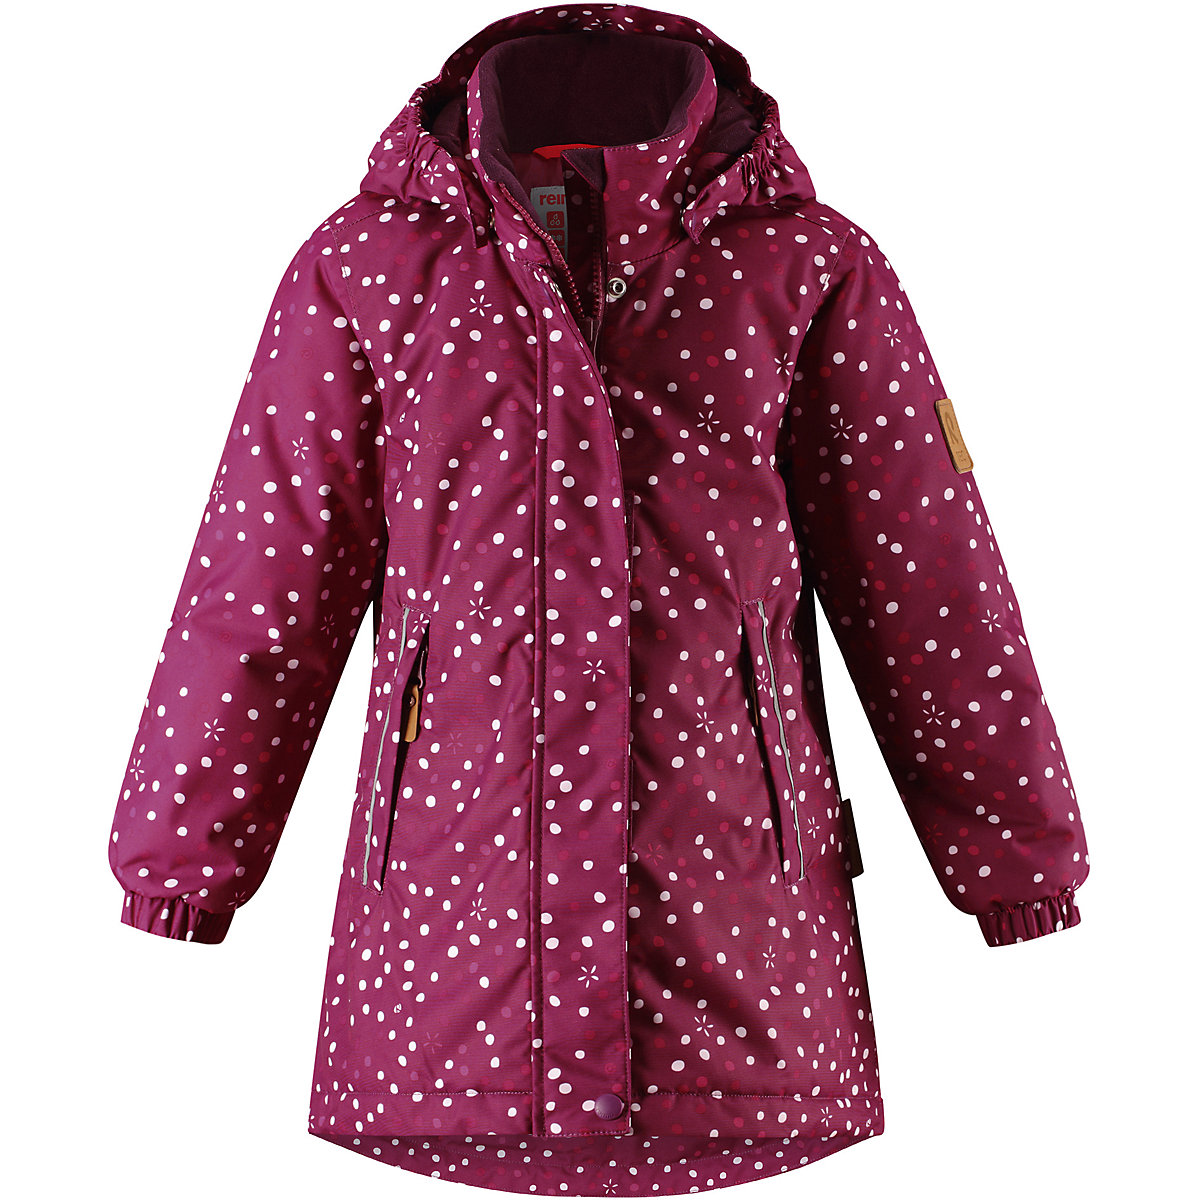 REIMA Jackets & Coats 8688727 for girls baby clothing winter warm boy girl jacket Polyester duhan motorcycle jacket motocross jacket moto men windproof cold proof clothing motorbike protective gear for winter autumn